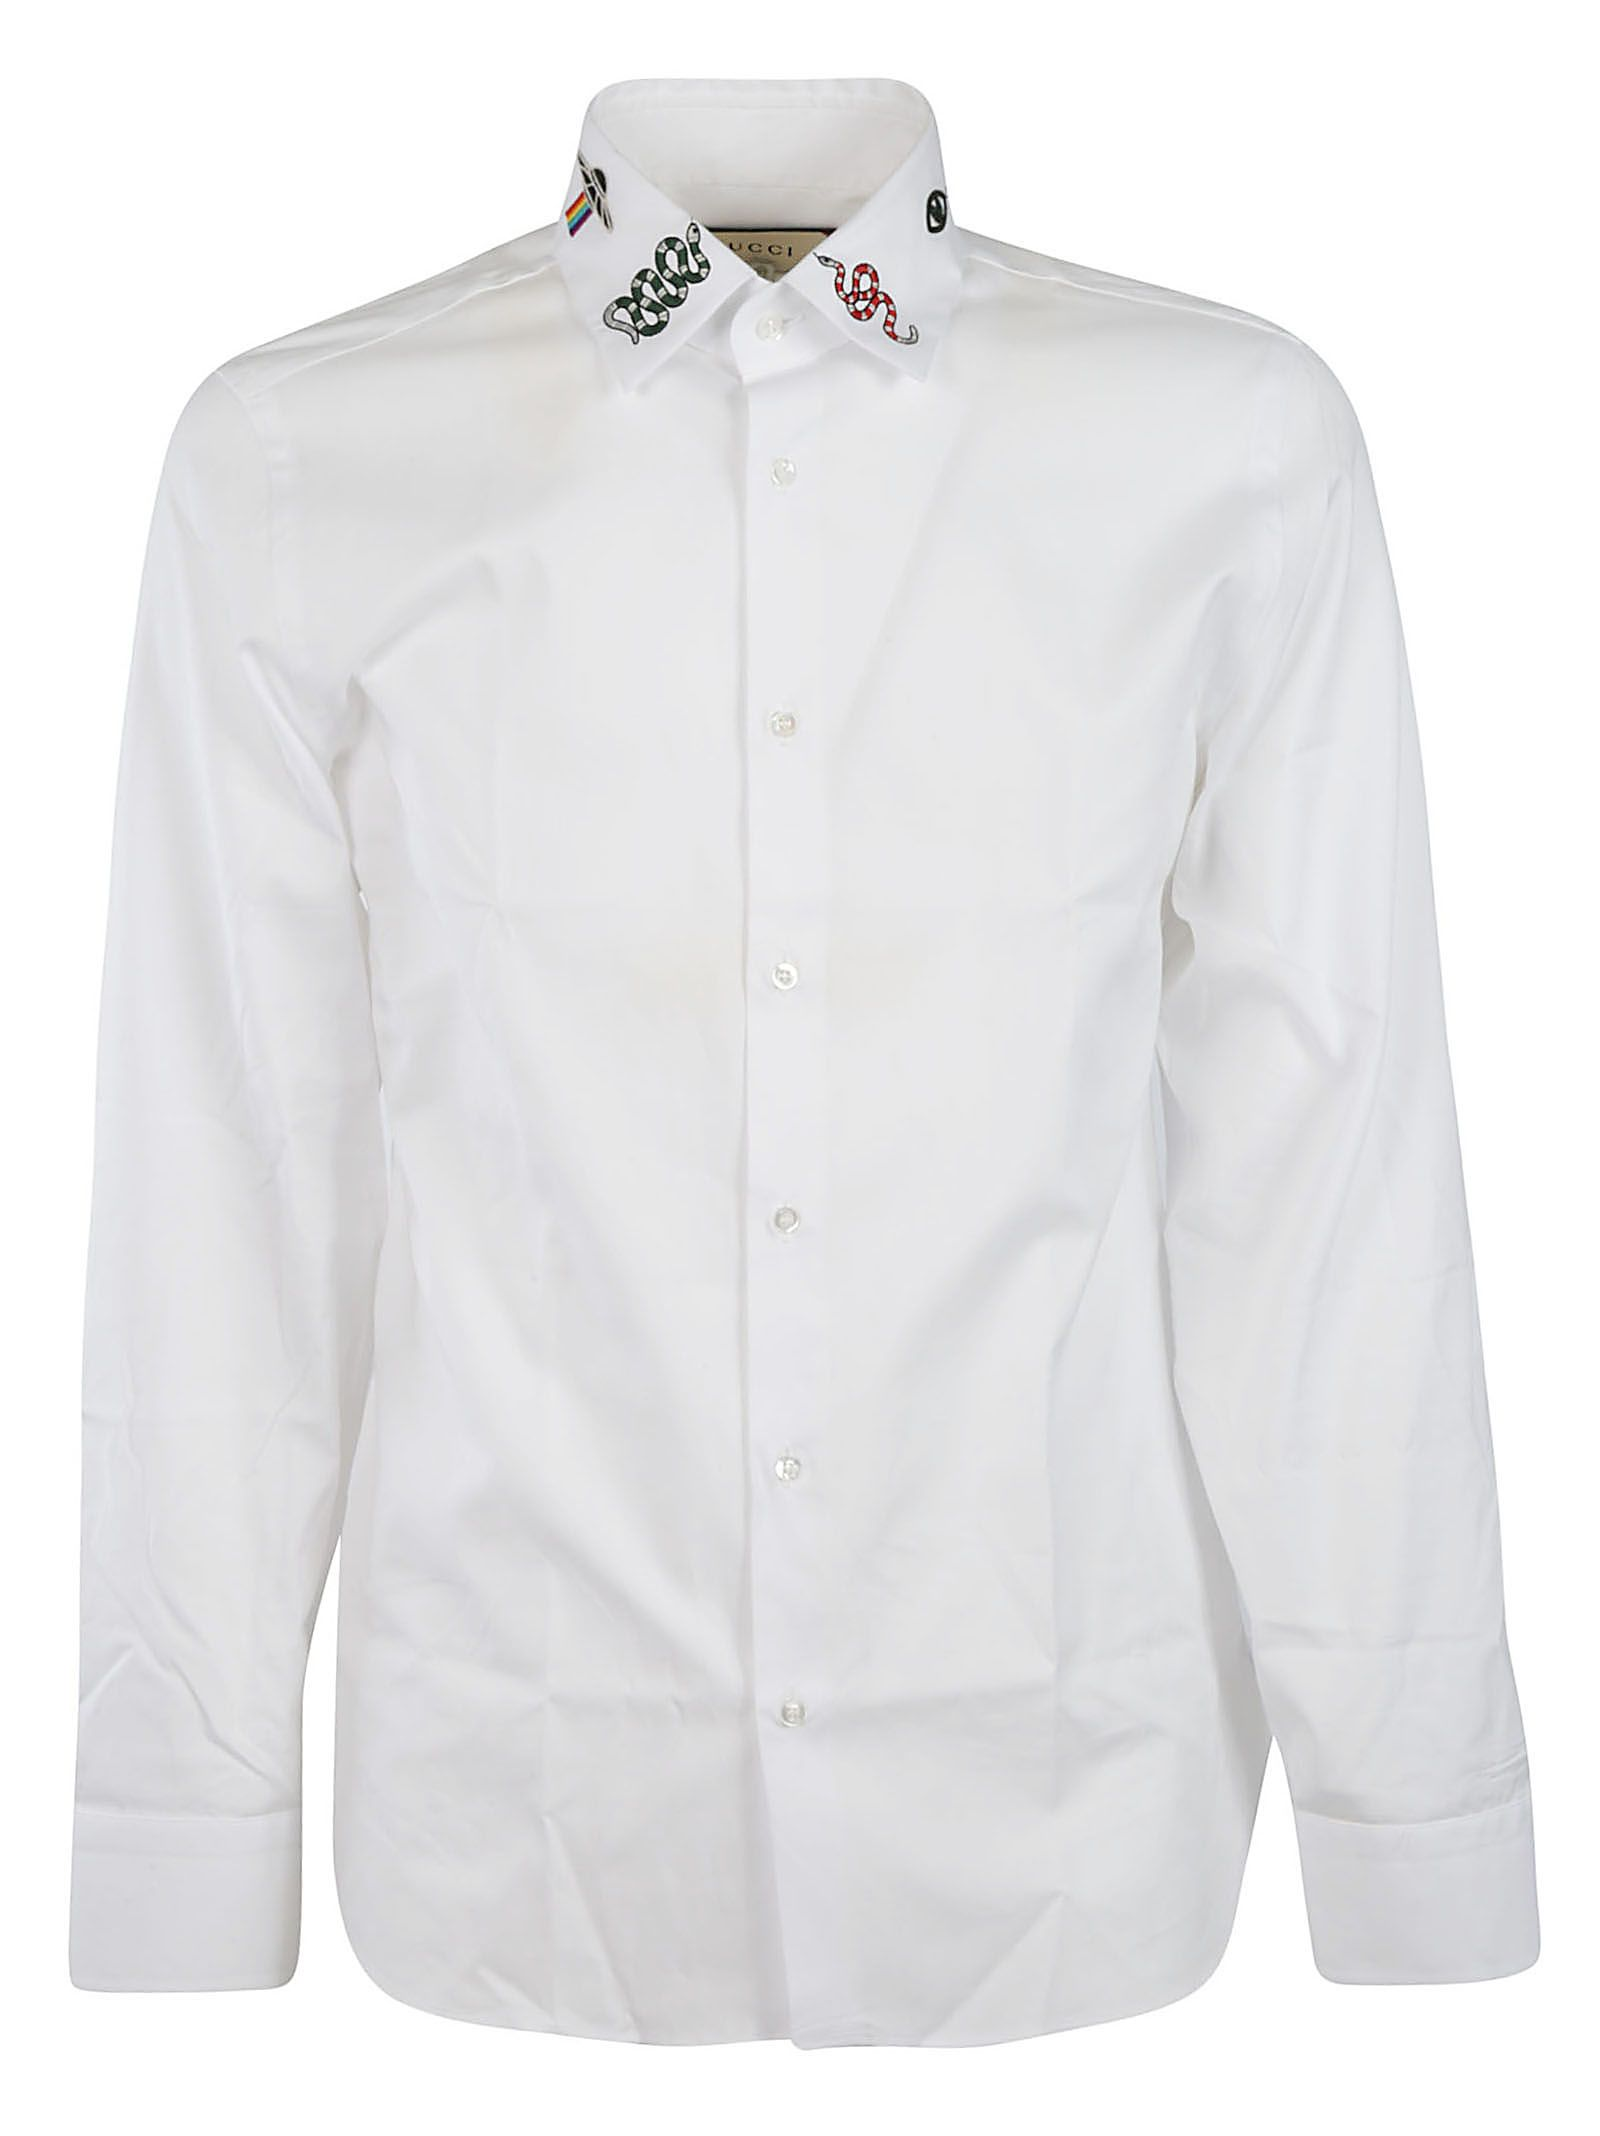 fefb060b942 italist | Best price in the market for Gucci Gucci Embroidered Shirt ...